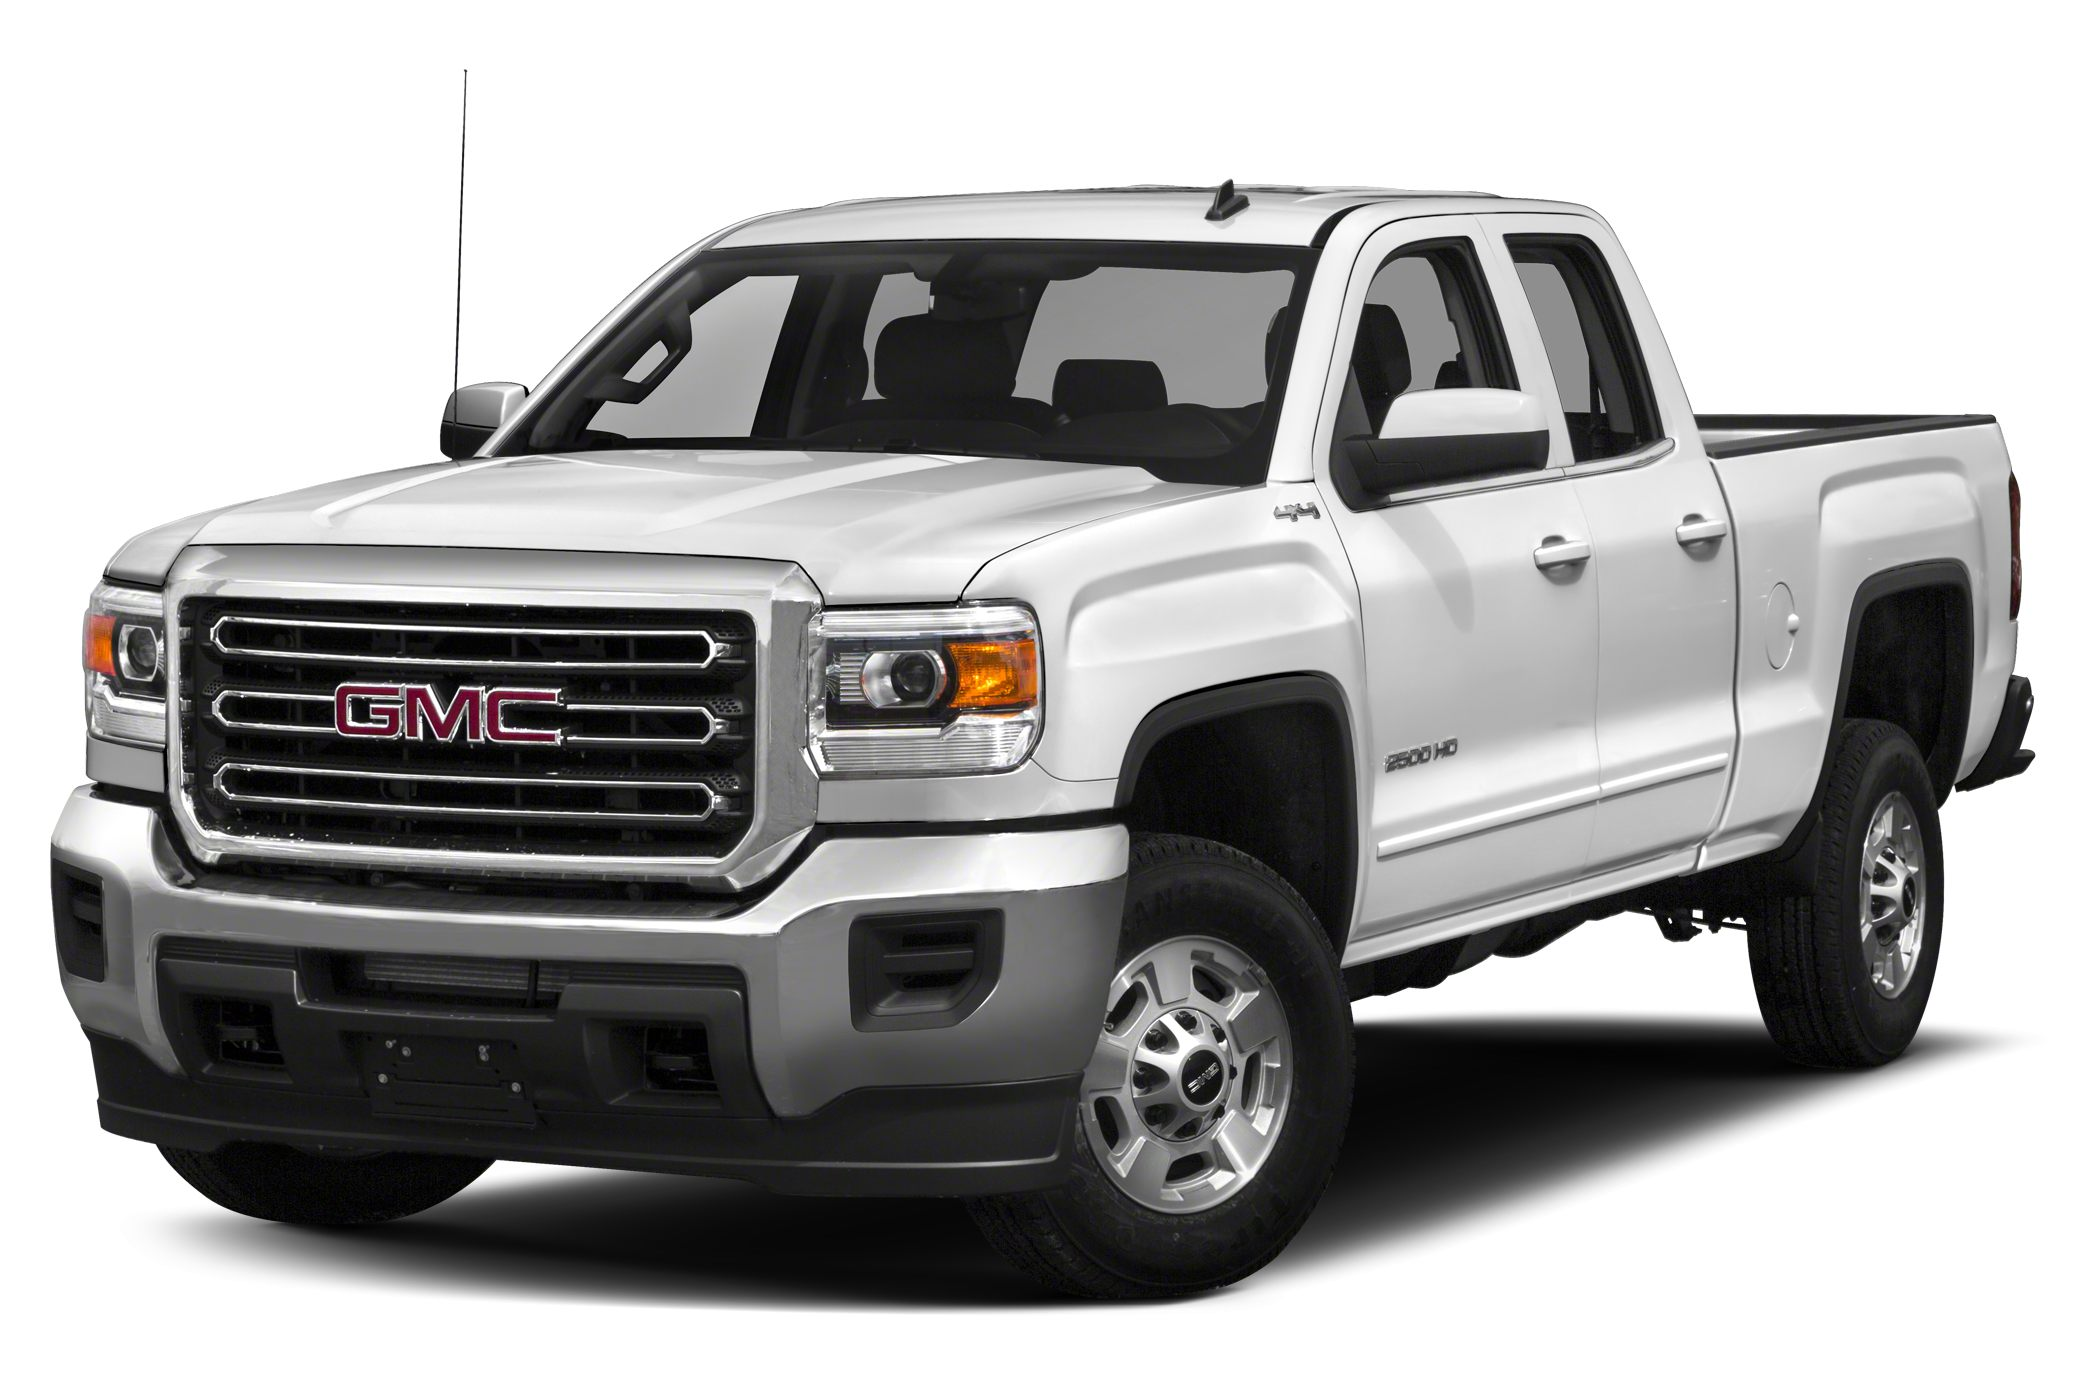 2015 GMC Sierra 2500 SLE Crew Cab Pickup for sale in Quarryville for $48,435 with 0 miles